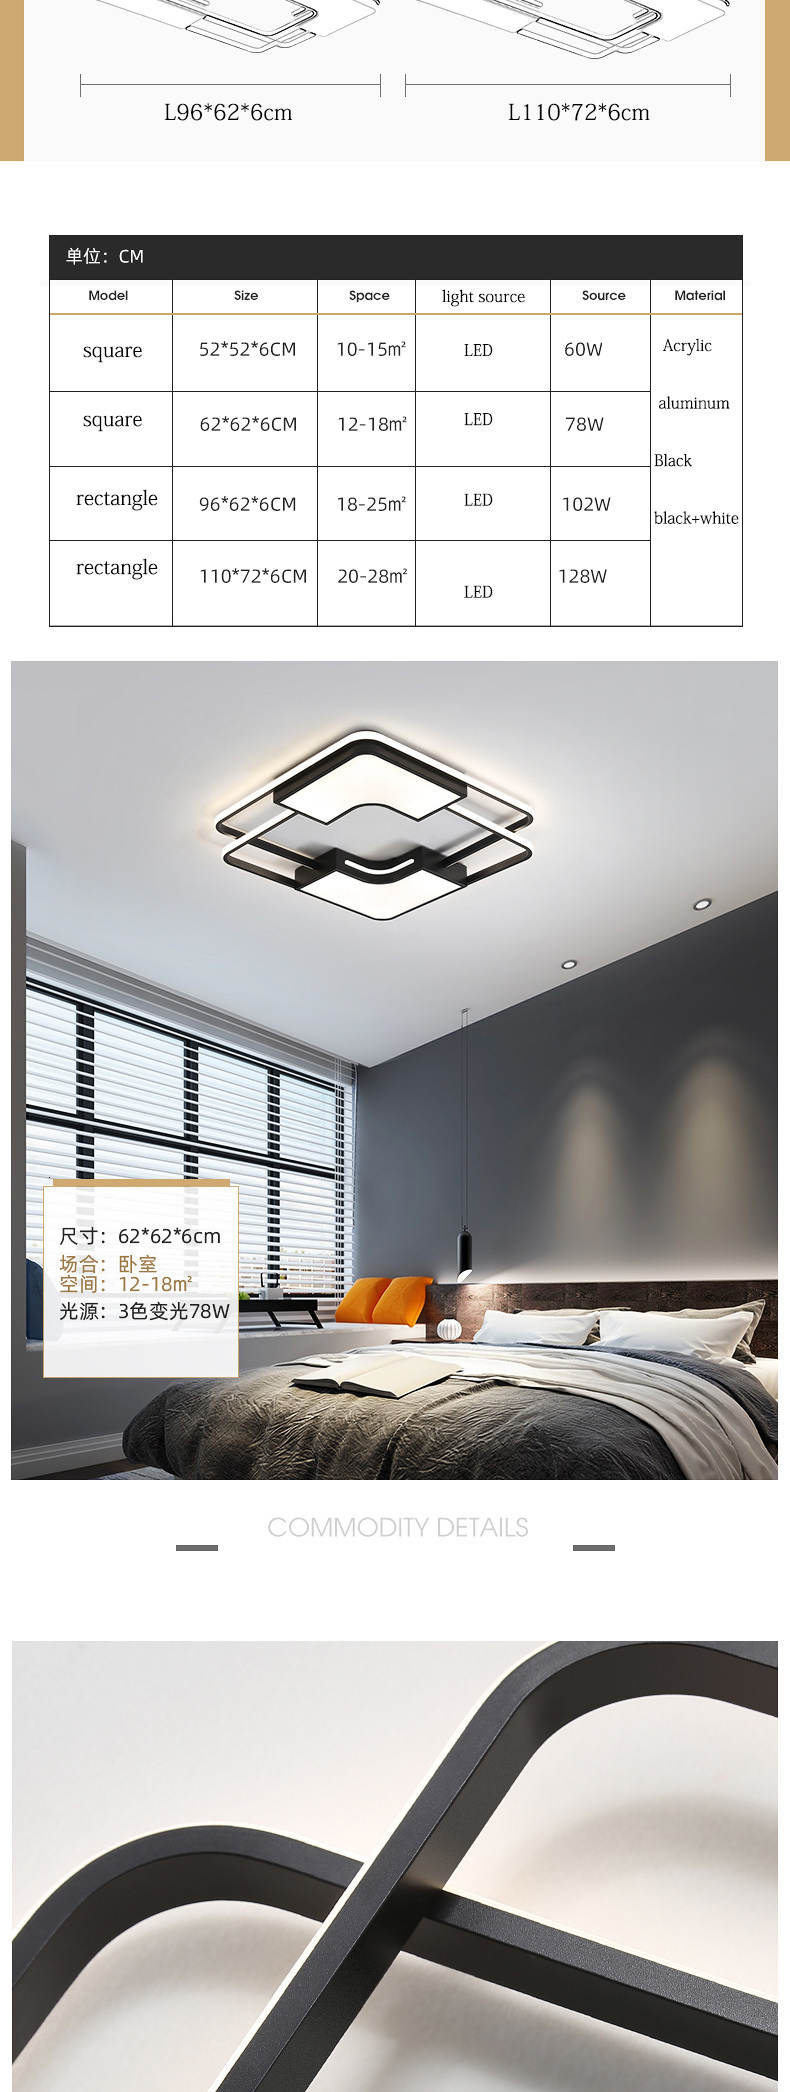 H4f8722f08159477083732ae8615c30d7K Modern Flush Ceiling Lights | White Ceiling Lights | New Listing Square Modern LED Ceiling Lights For Living Room Bedroom Study Home indoor Acrylic Black White Ceiling Lamp Fixture 001